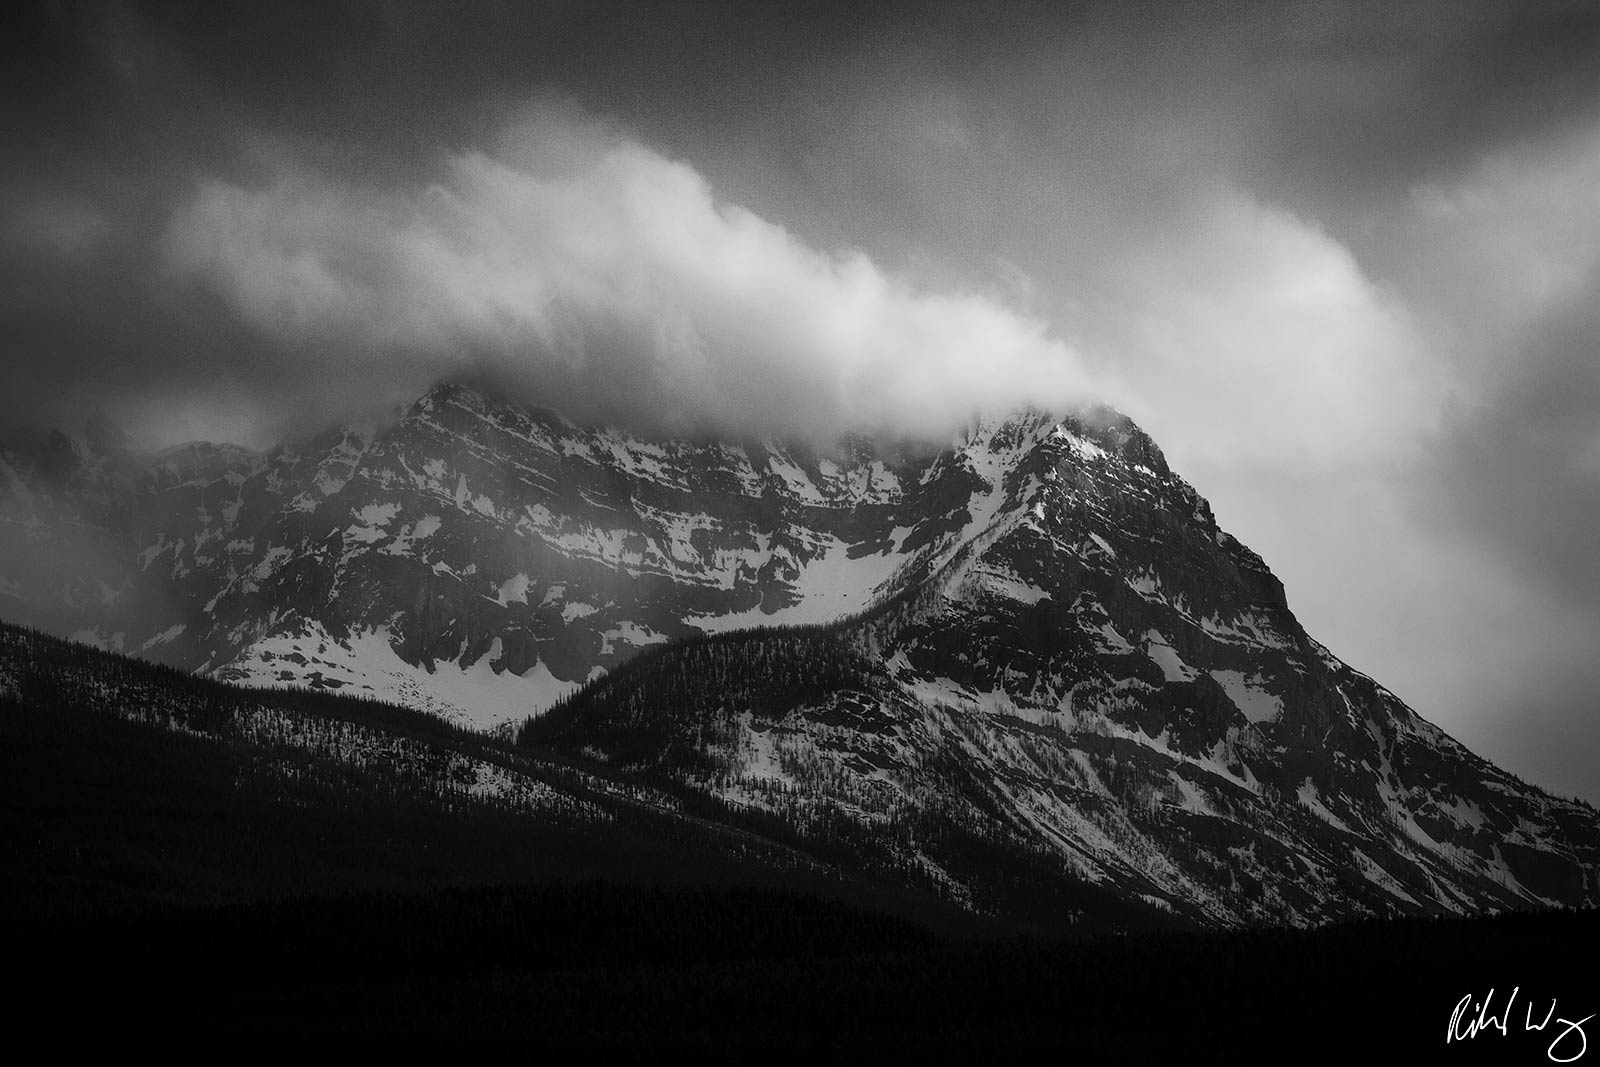 Storm Mountain, Banff National Park, Alberta, Canada, photo, photo